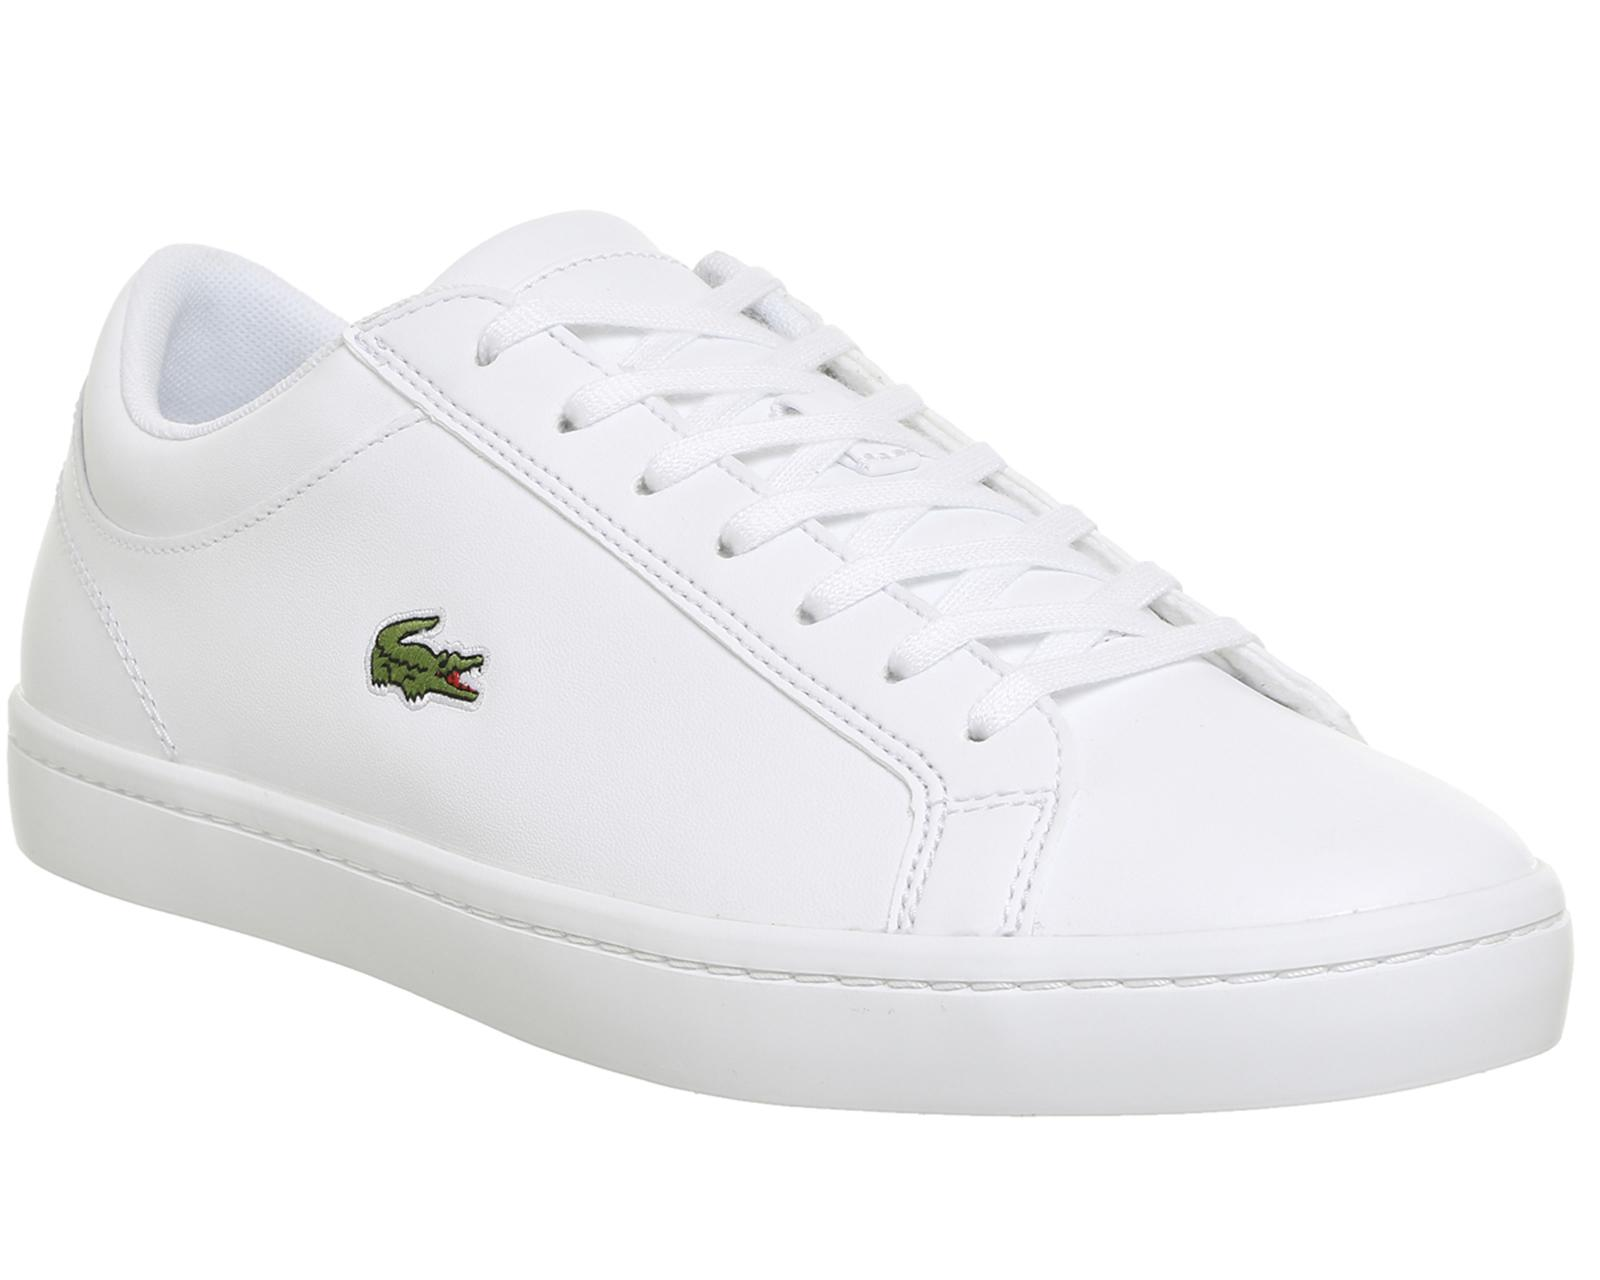 5bbc698b4 Lacoste Straightset Trainers in White for Men - Lyst